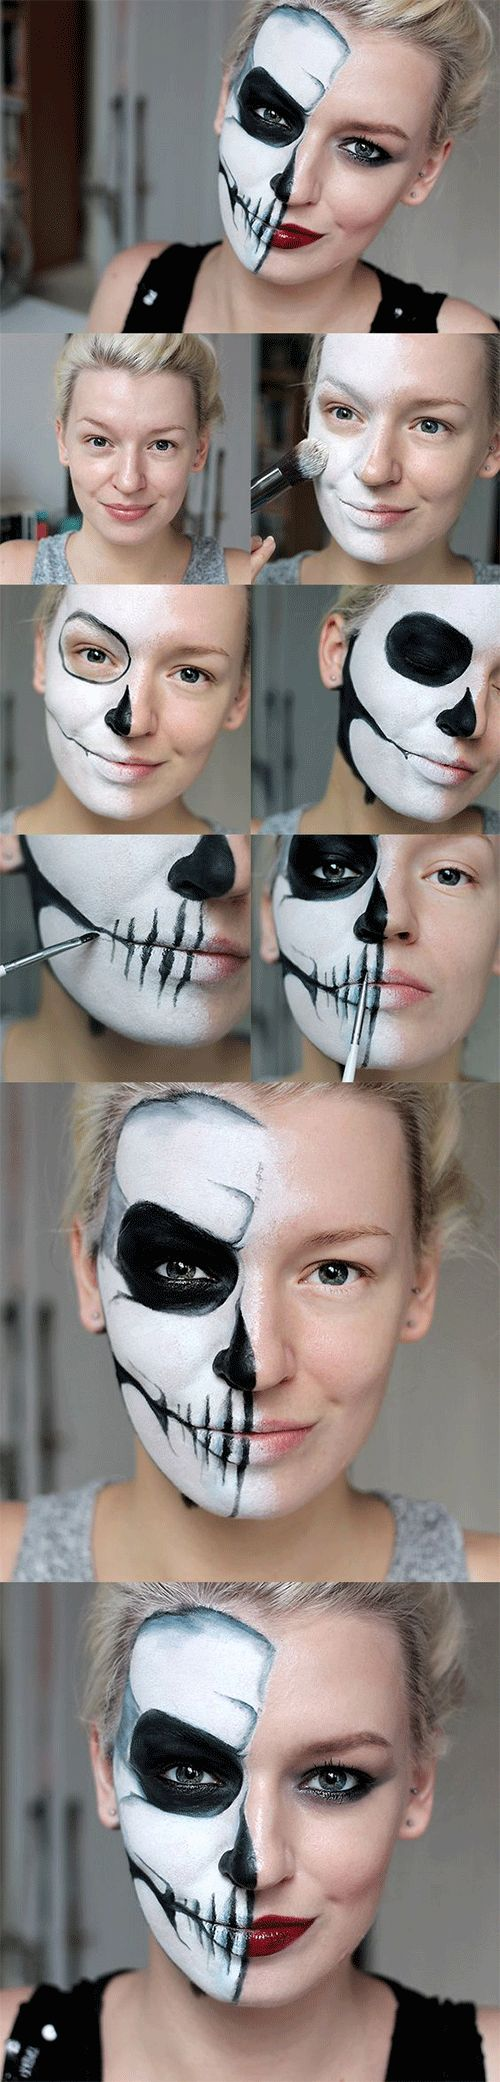 Nose piercing bump pus   best HALOWEEN images on Pinterest  Costumes Artistic make up